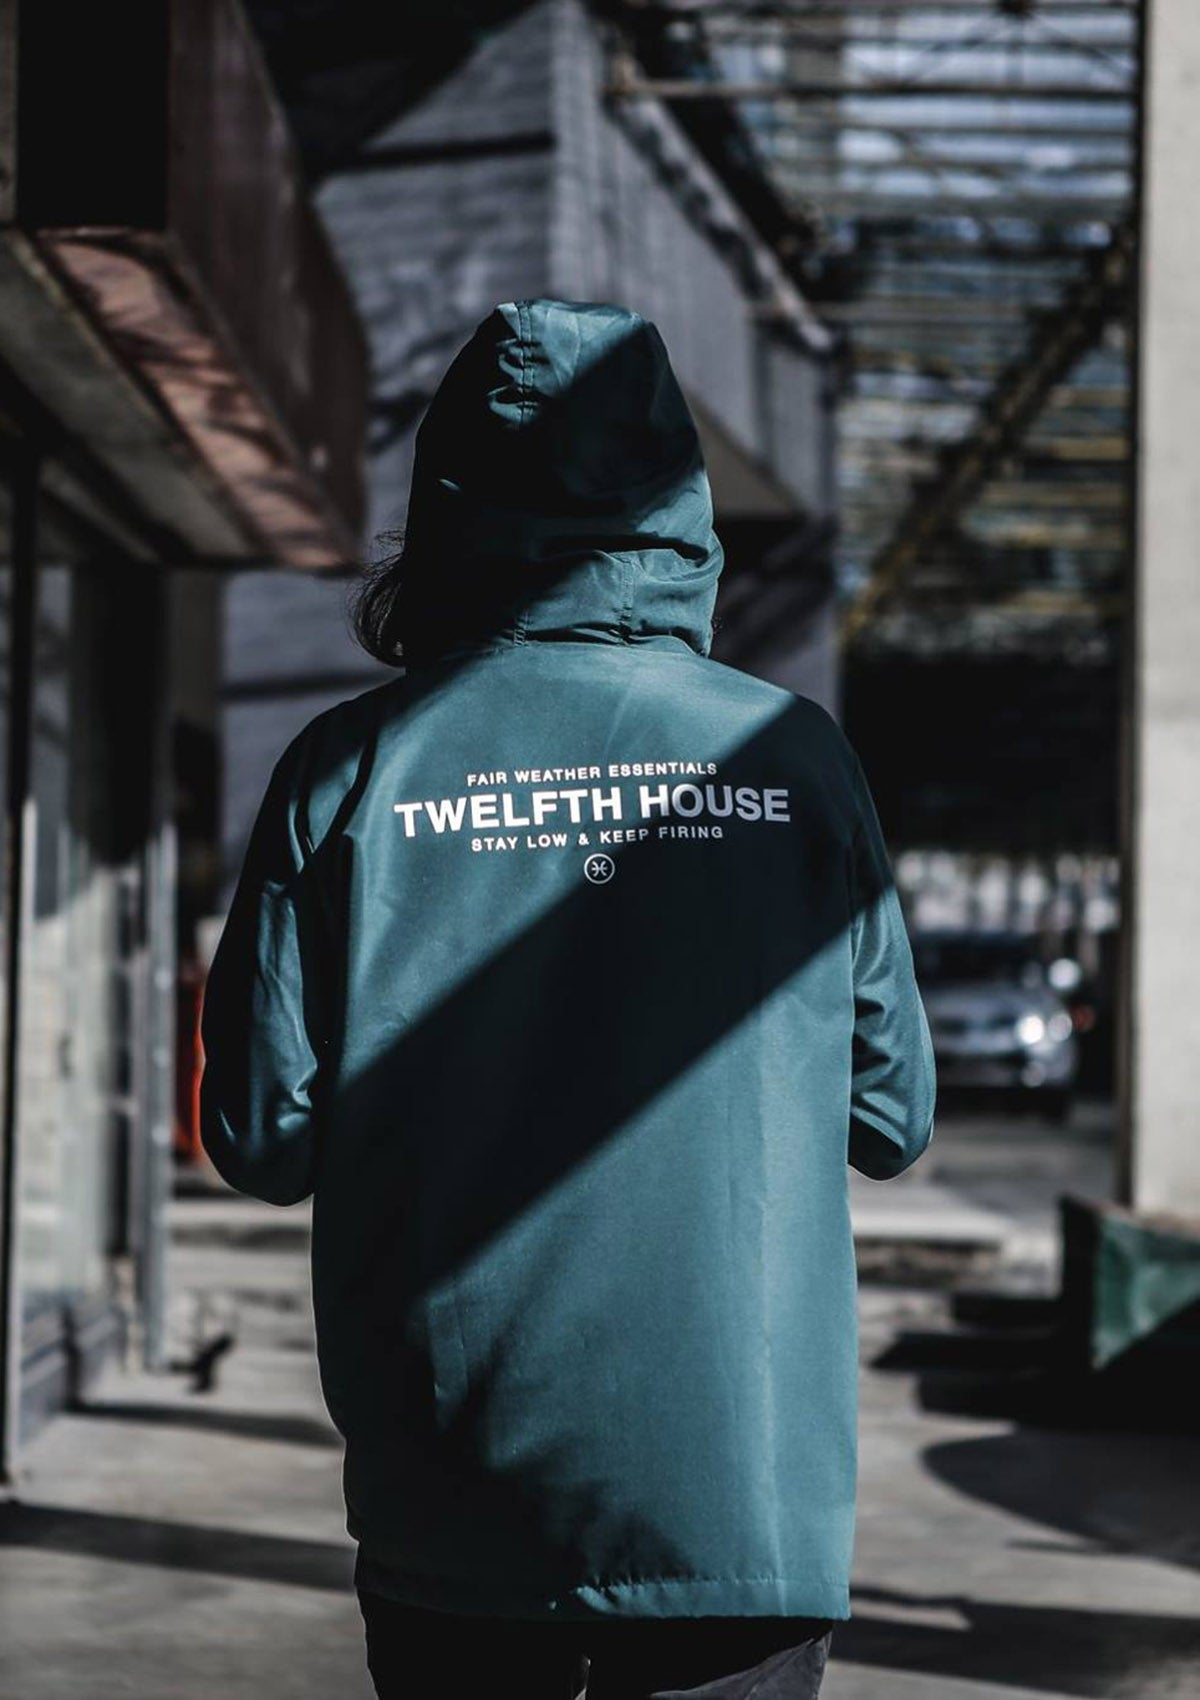 The Twelfth House 2017 / Issue 3